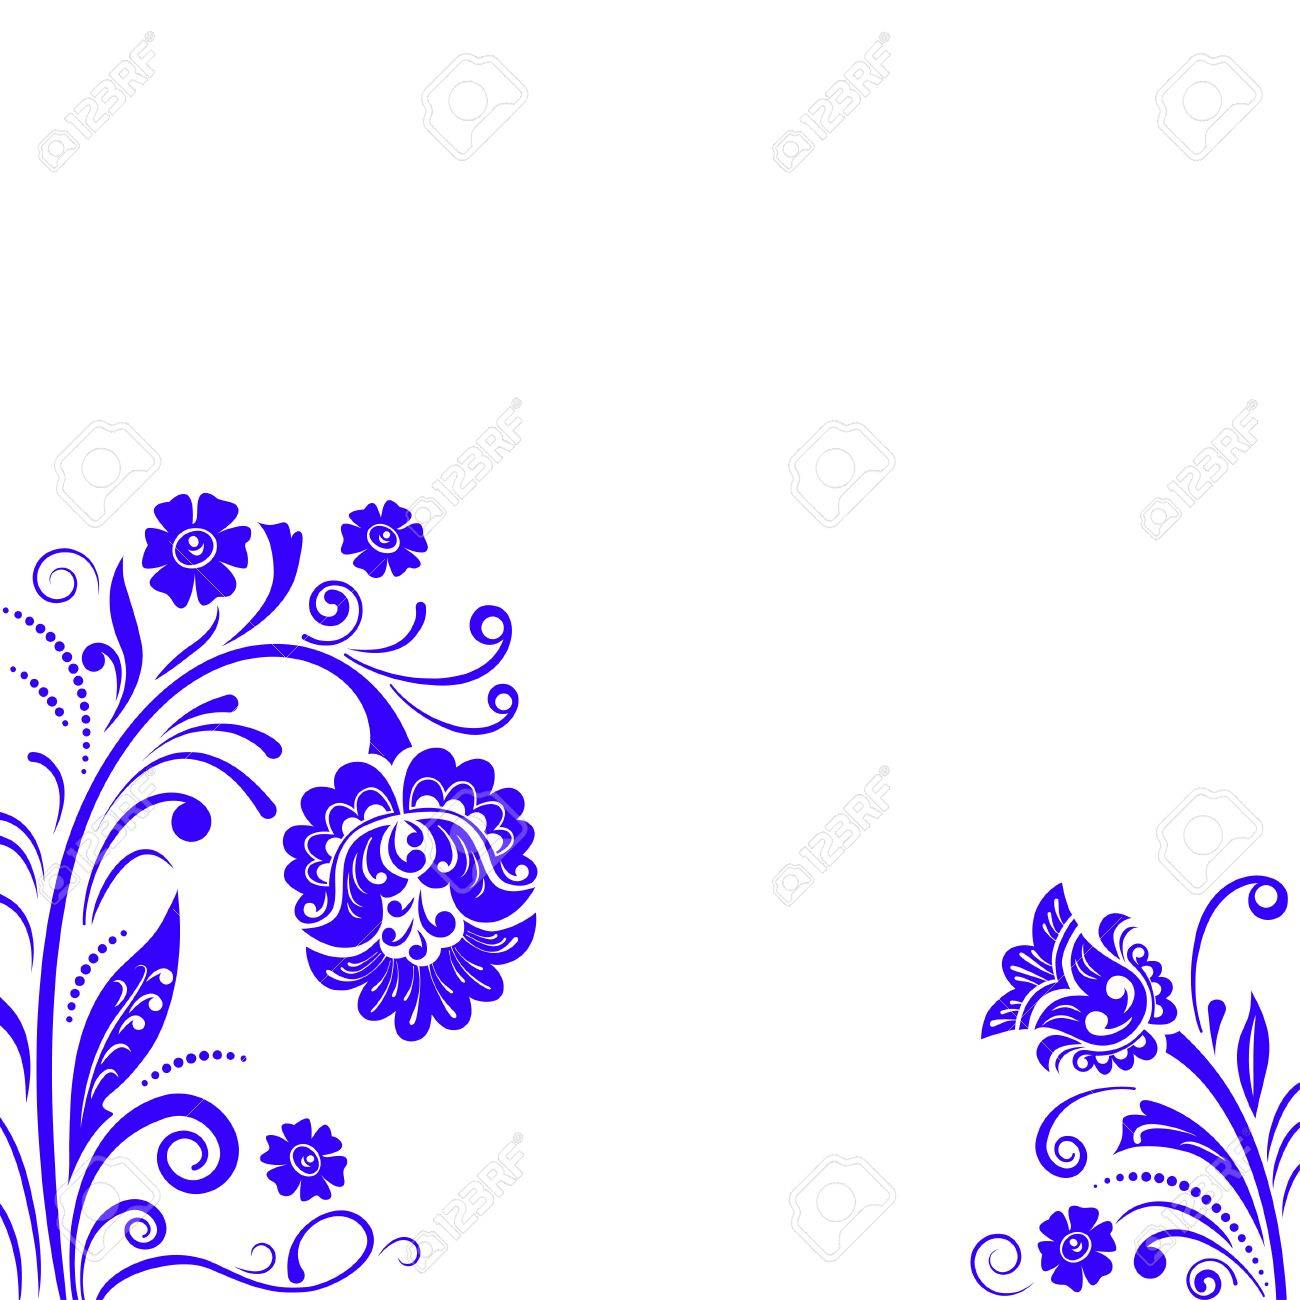 Abstract Fancy Flowers, Stencil, Decoration For Card, Window